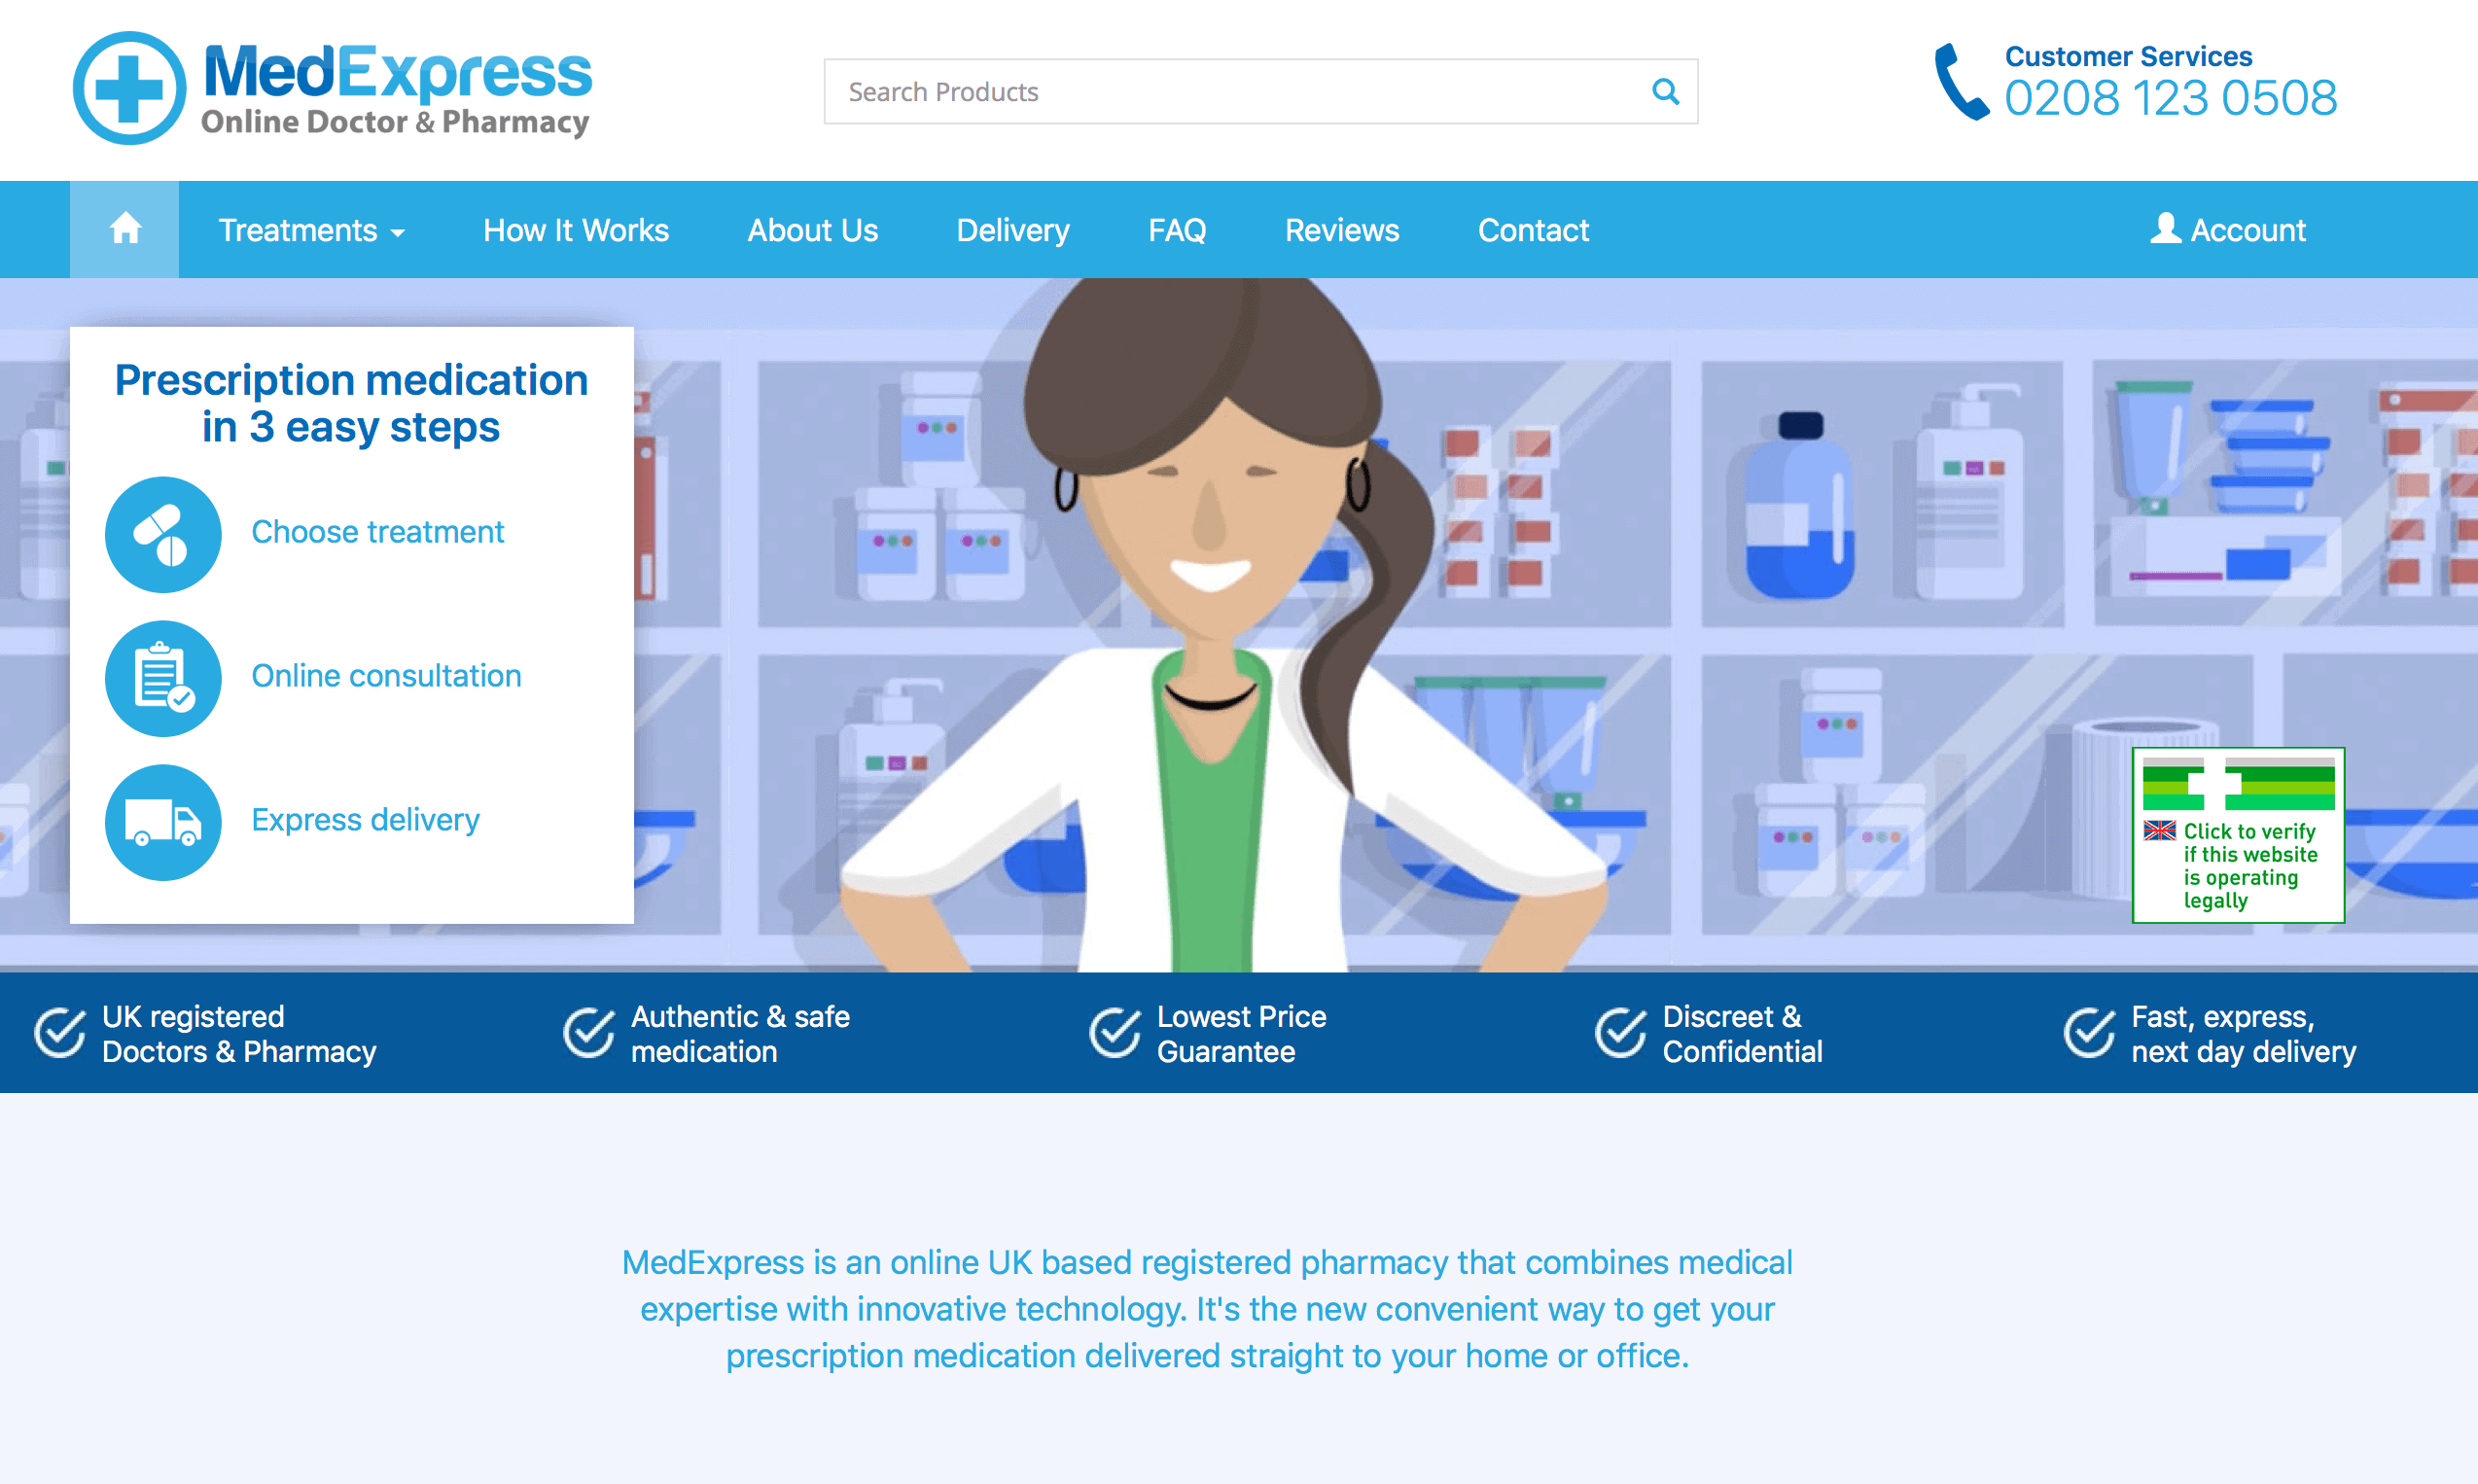 MedExpress.co.uk Pharmacy Review